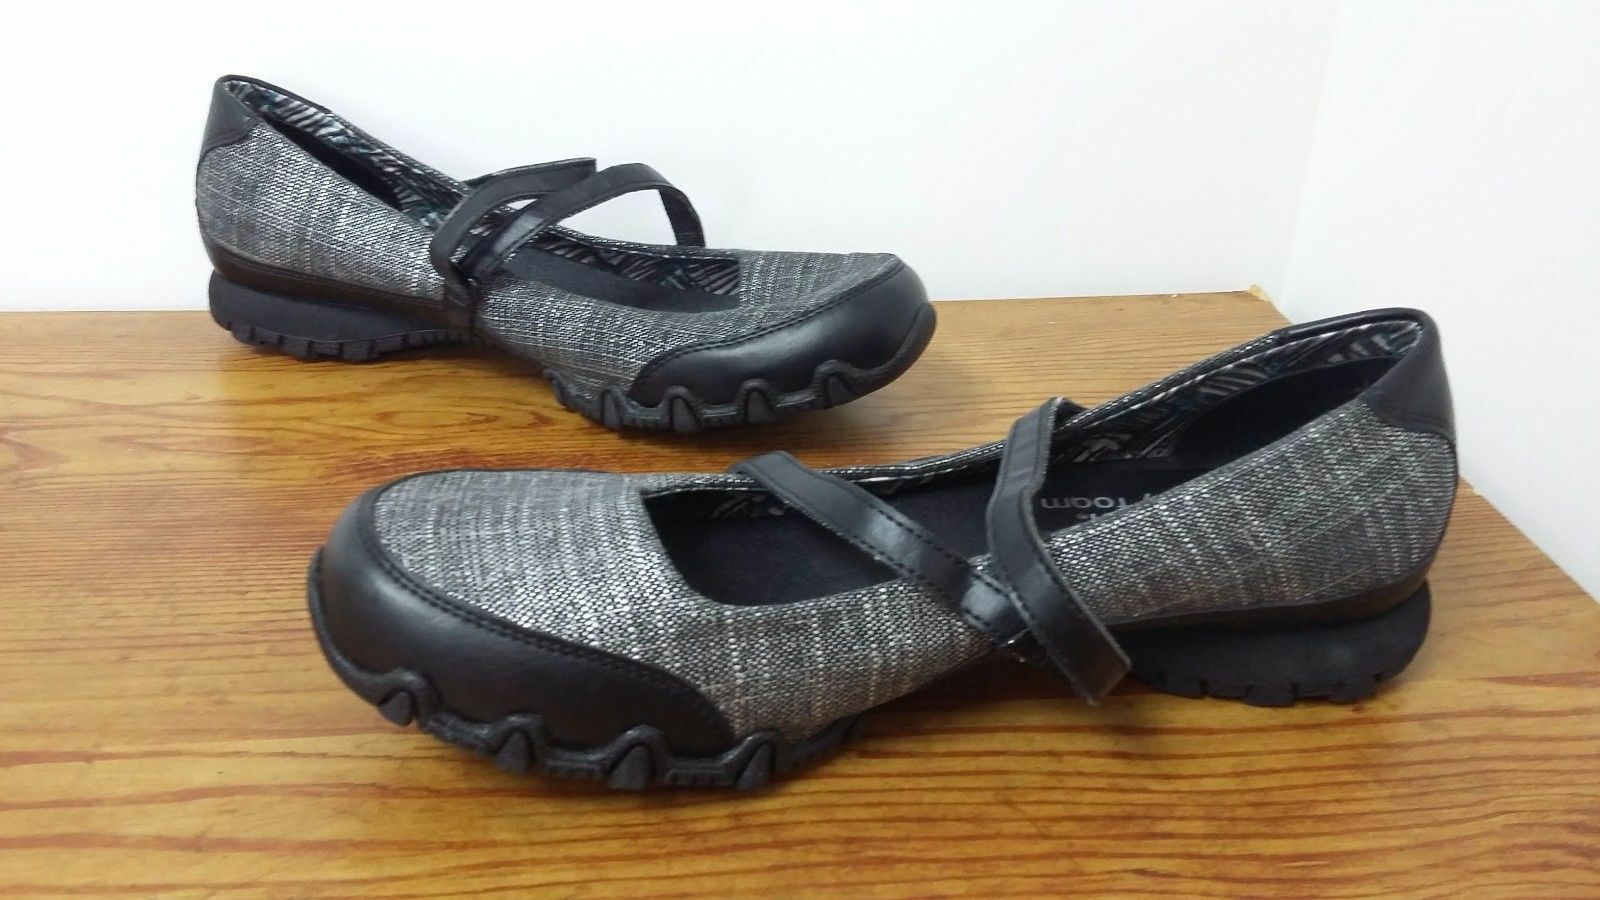 New Mary Womens Skechers Biker Ethereal Mary New Janes Style 48951 Black/Silver 109T 51b4cb